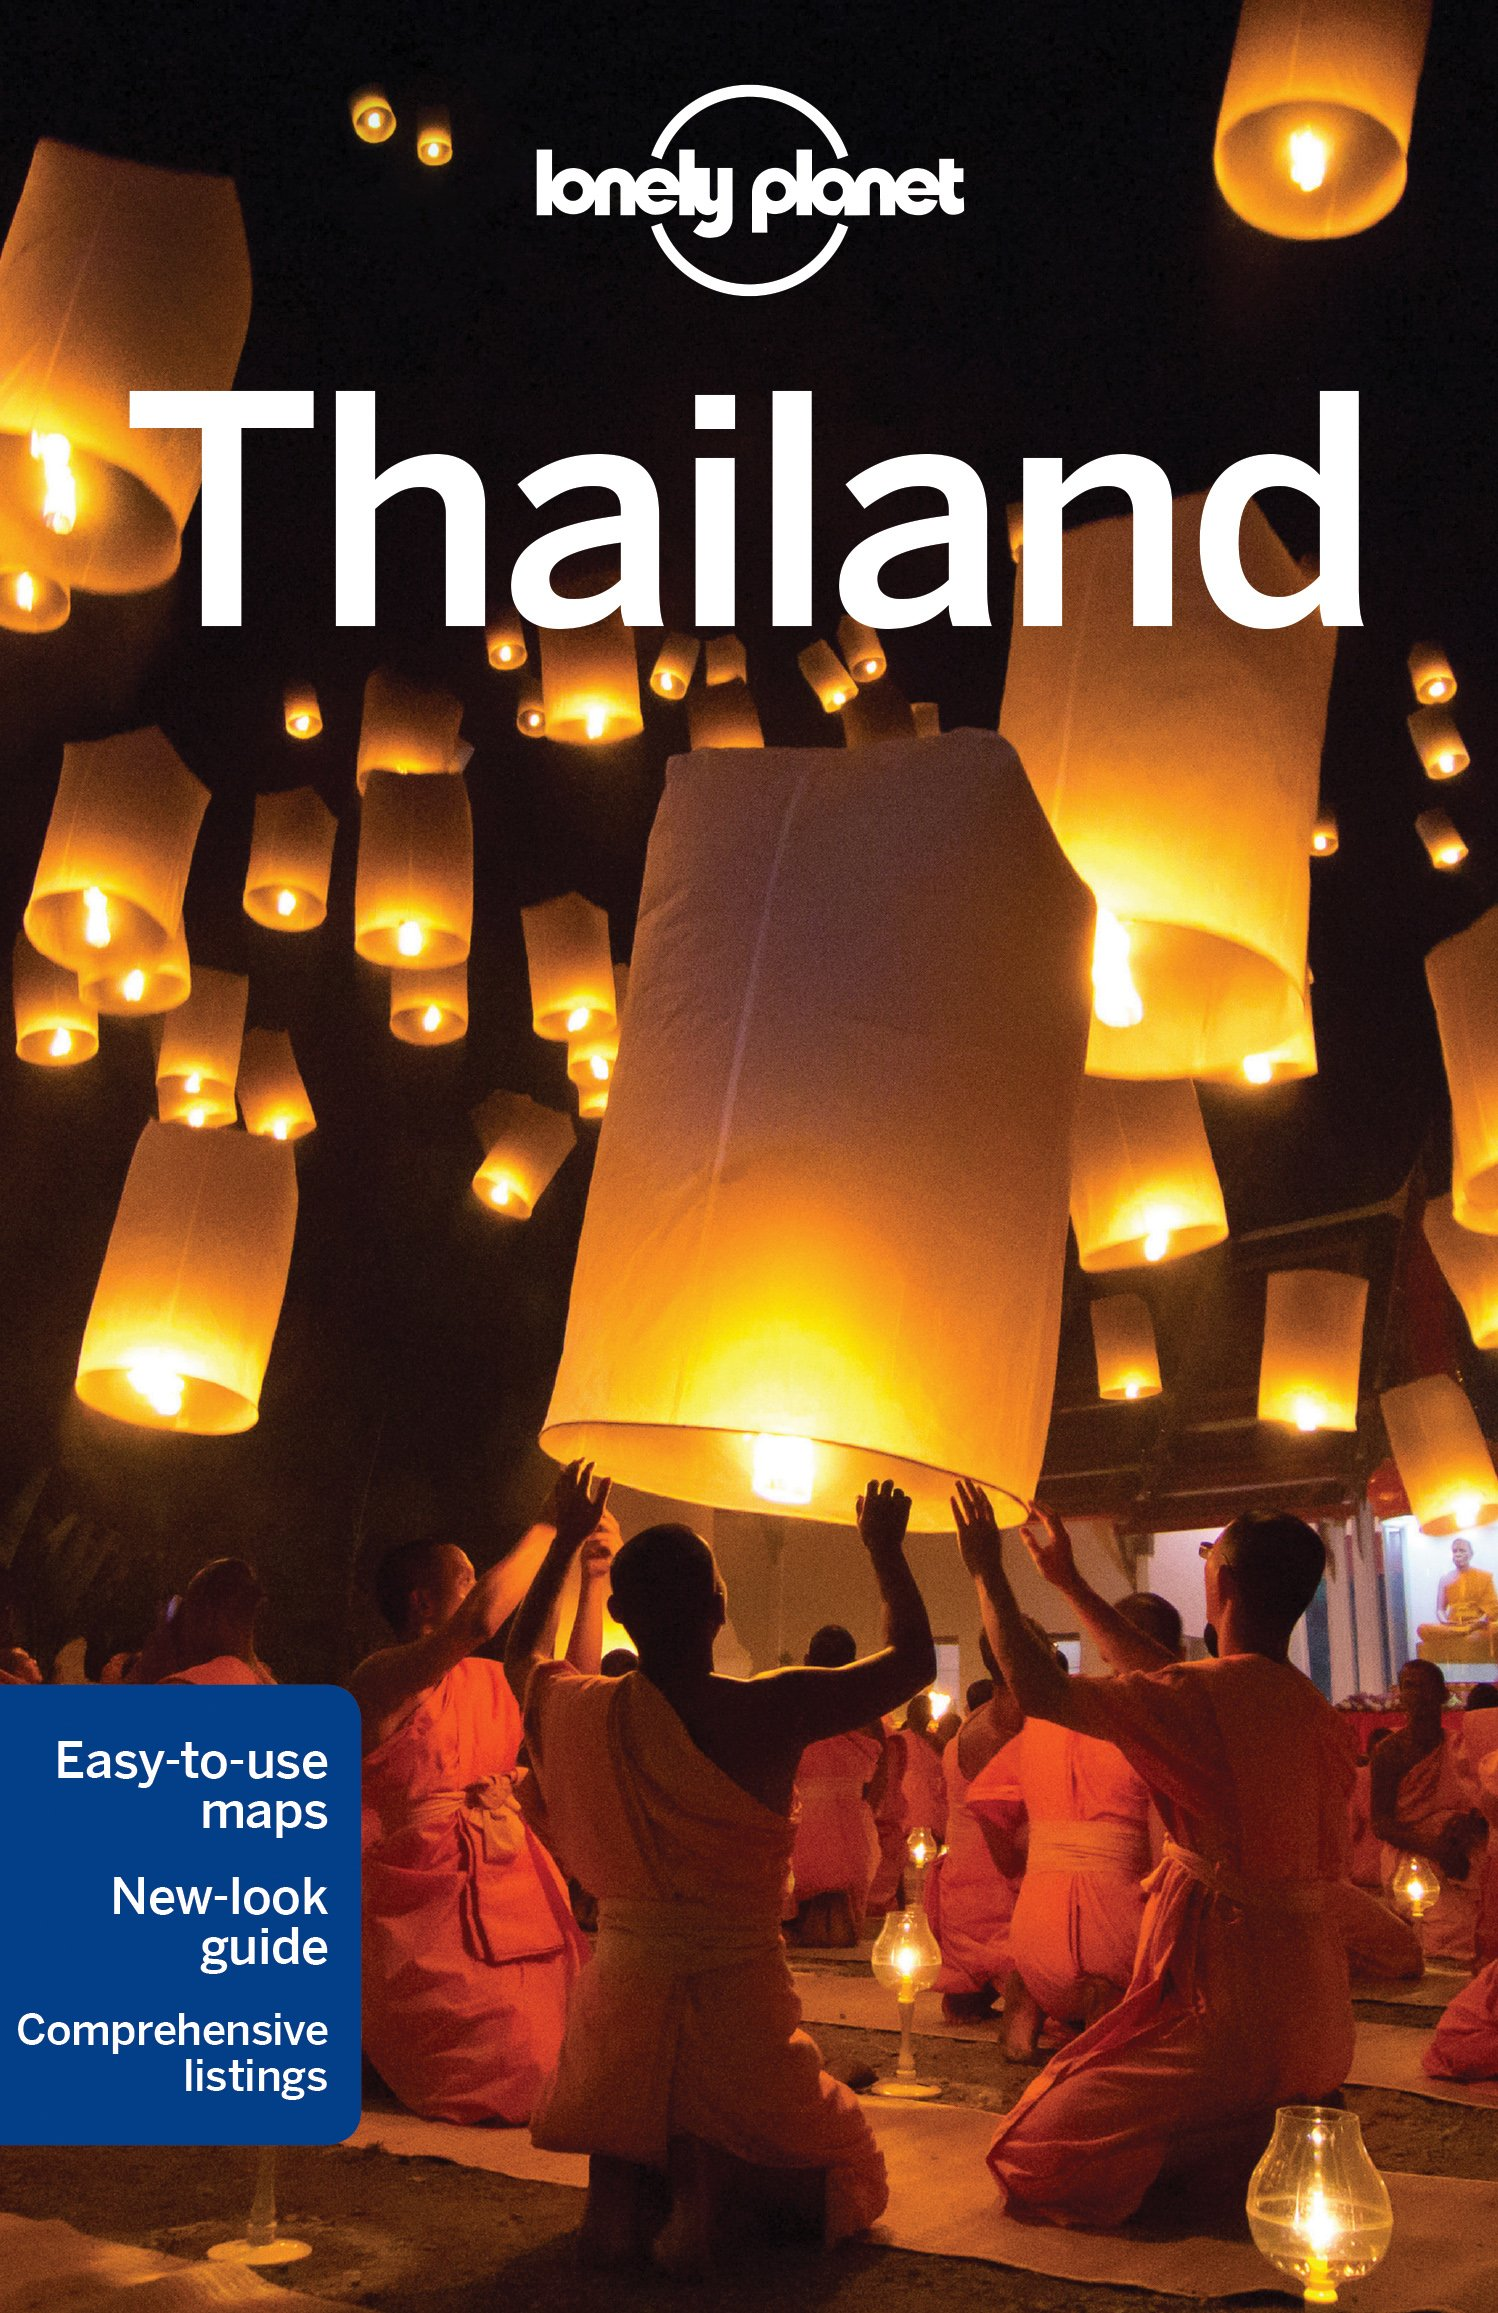 Lonely Planet Thailand Travel Guide product image